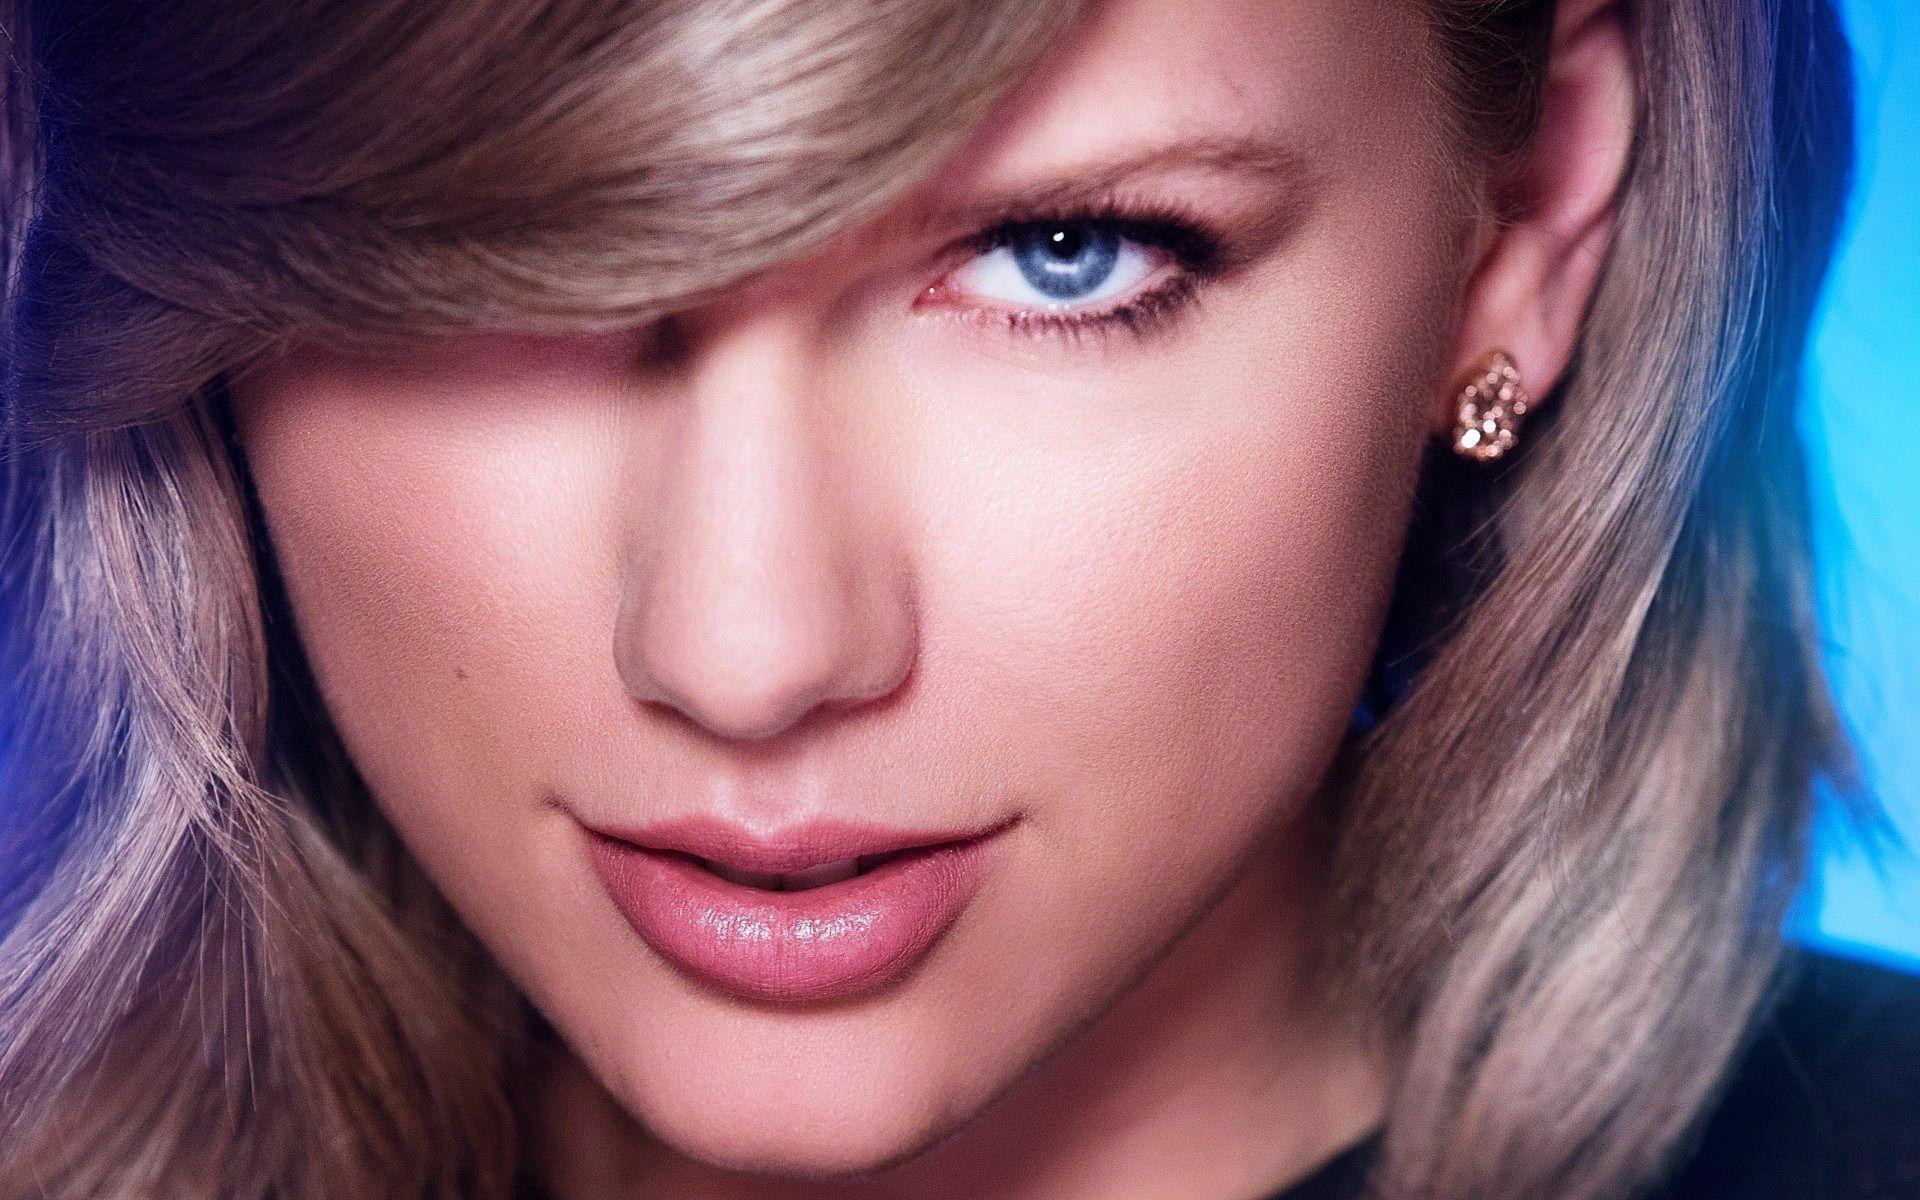 taylor swift 2017 wallpapers - wallpaper cave